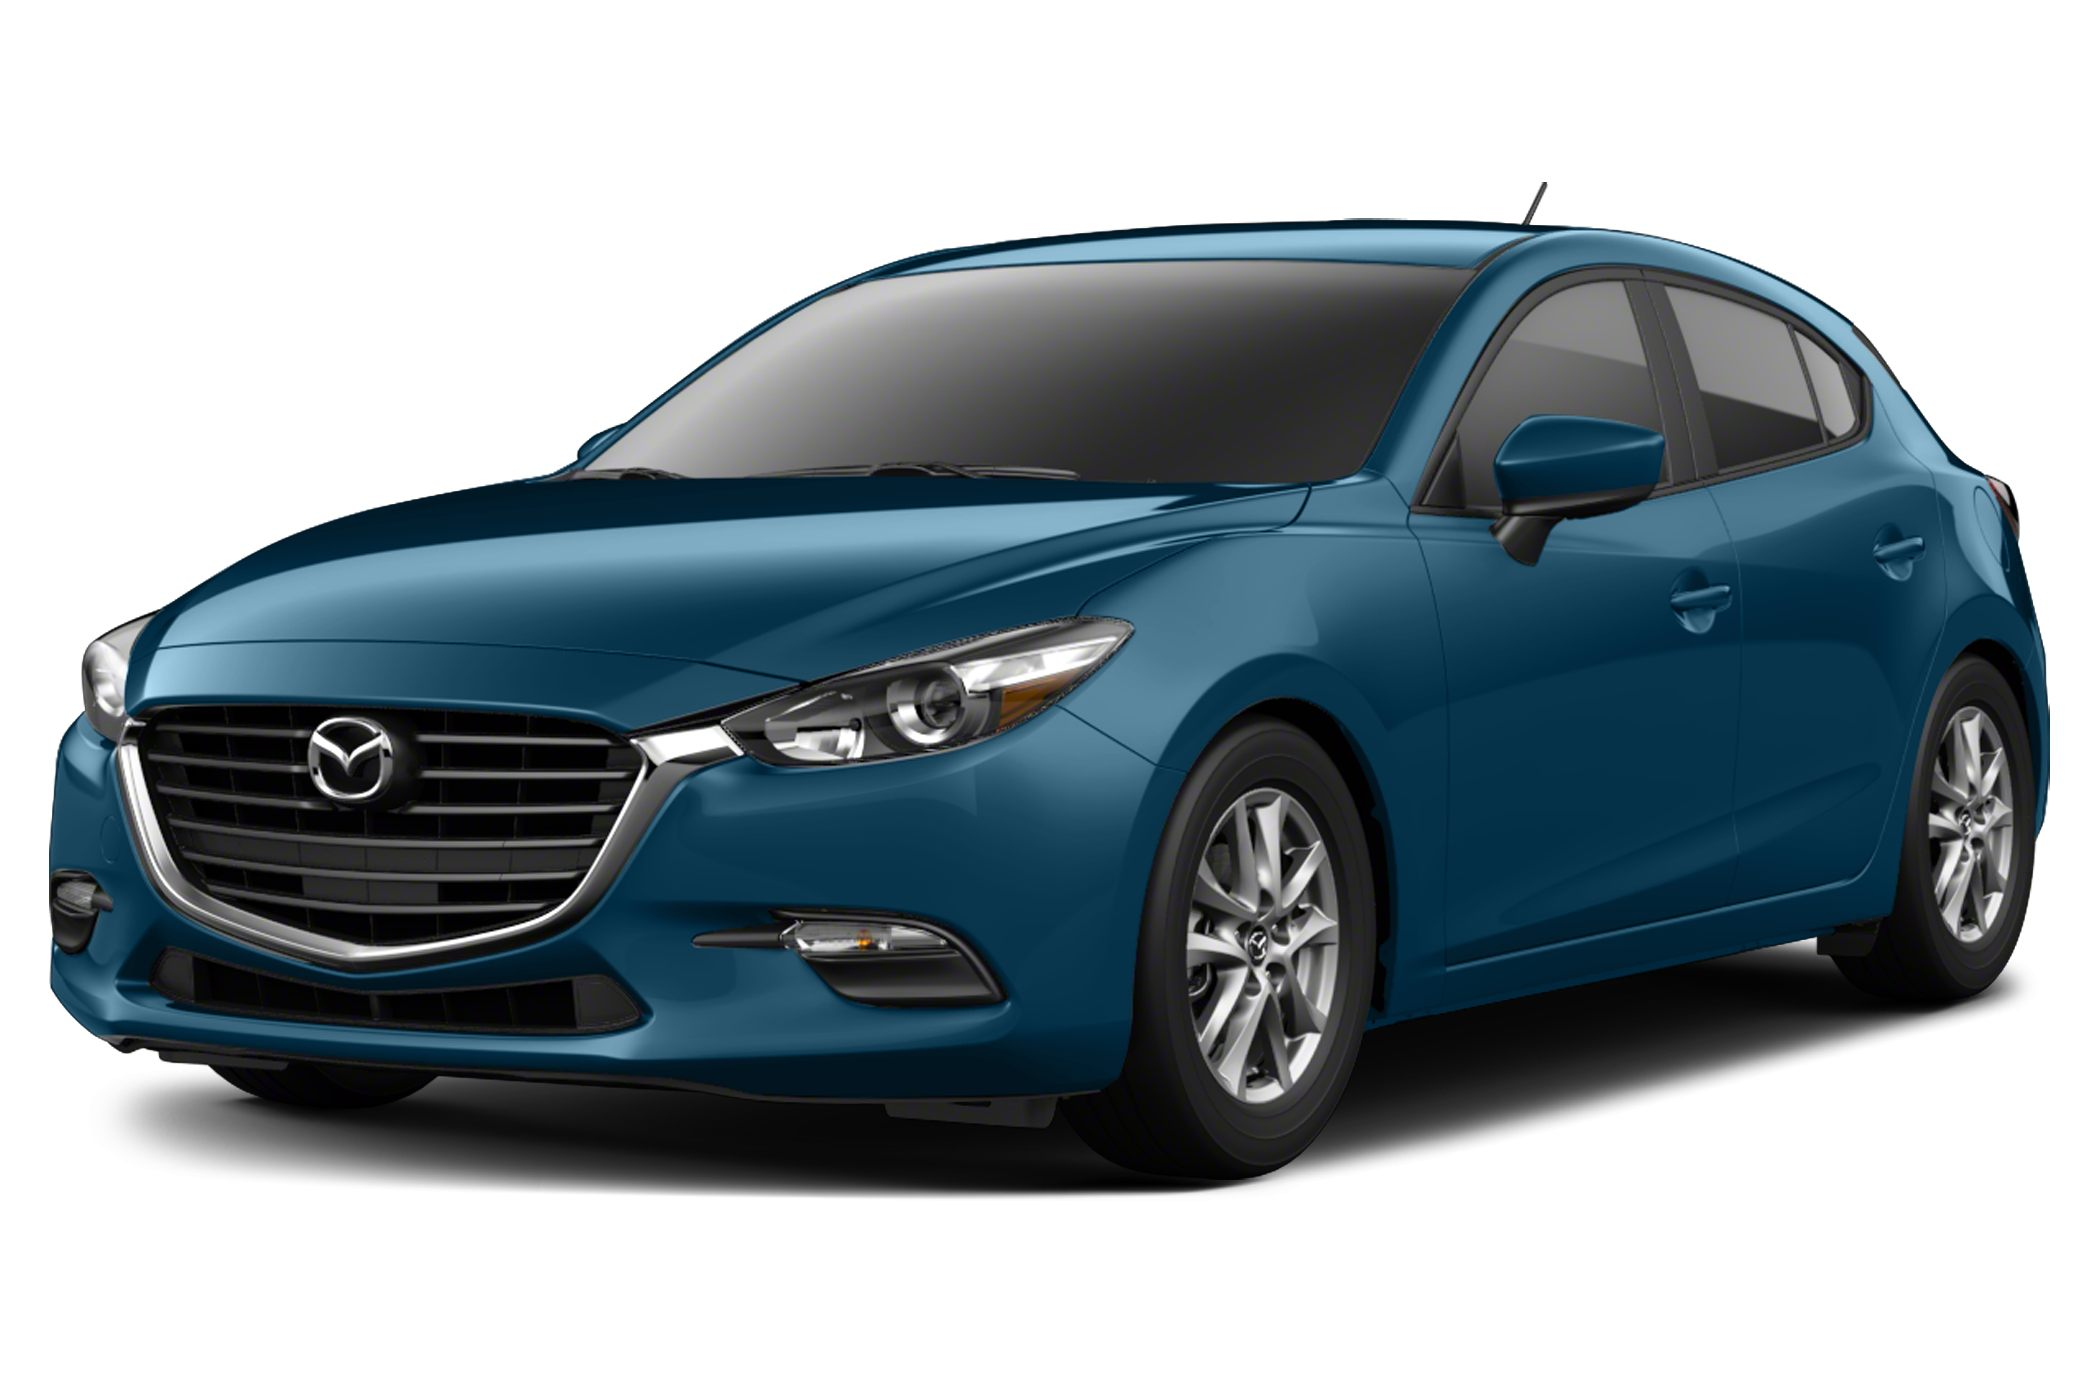 2018 mazda mazda3 deals prices incentives leases overview carsdirect. Black Bedroom Furniture Sets. Home Design Ideas